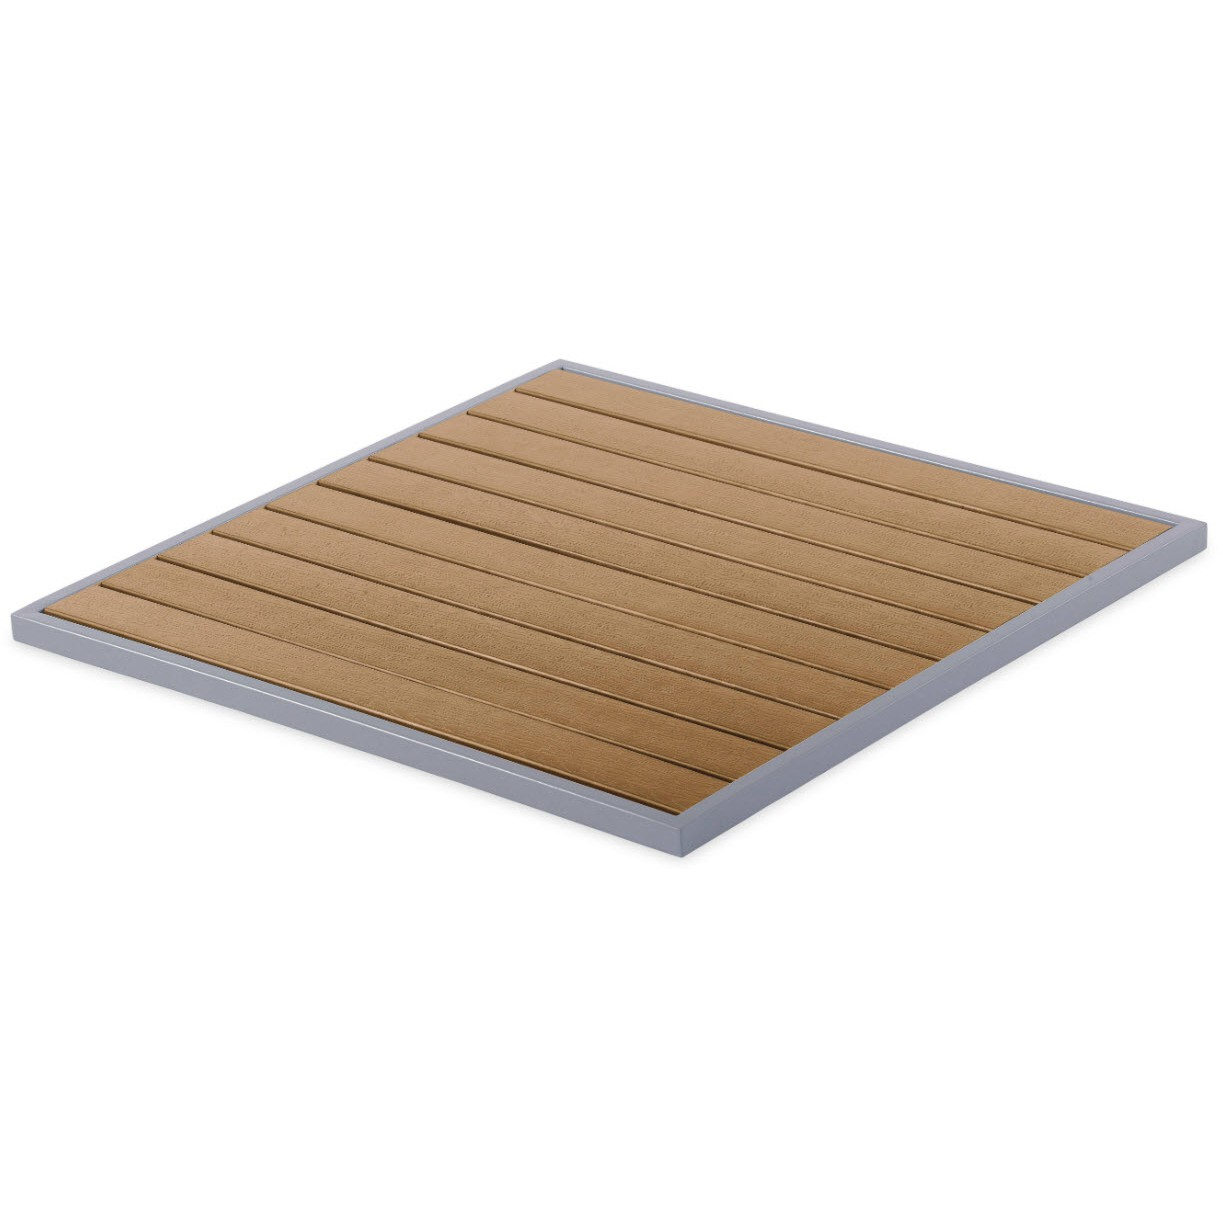 Ordinaire Aluminum Patio Table Top With Plastic Teak Slats   Square